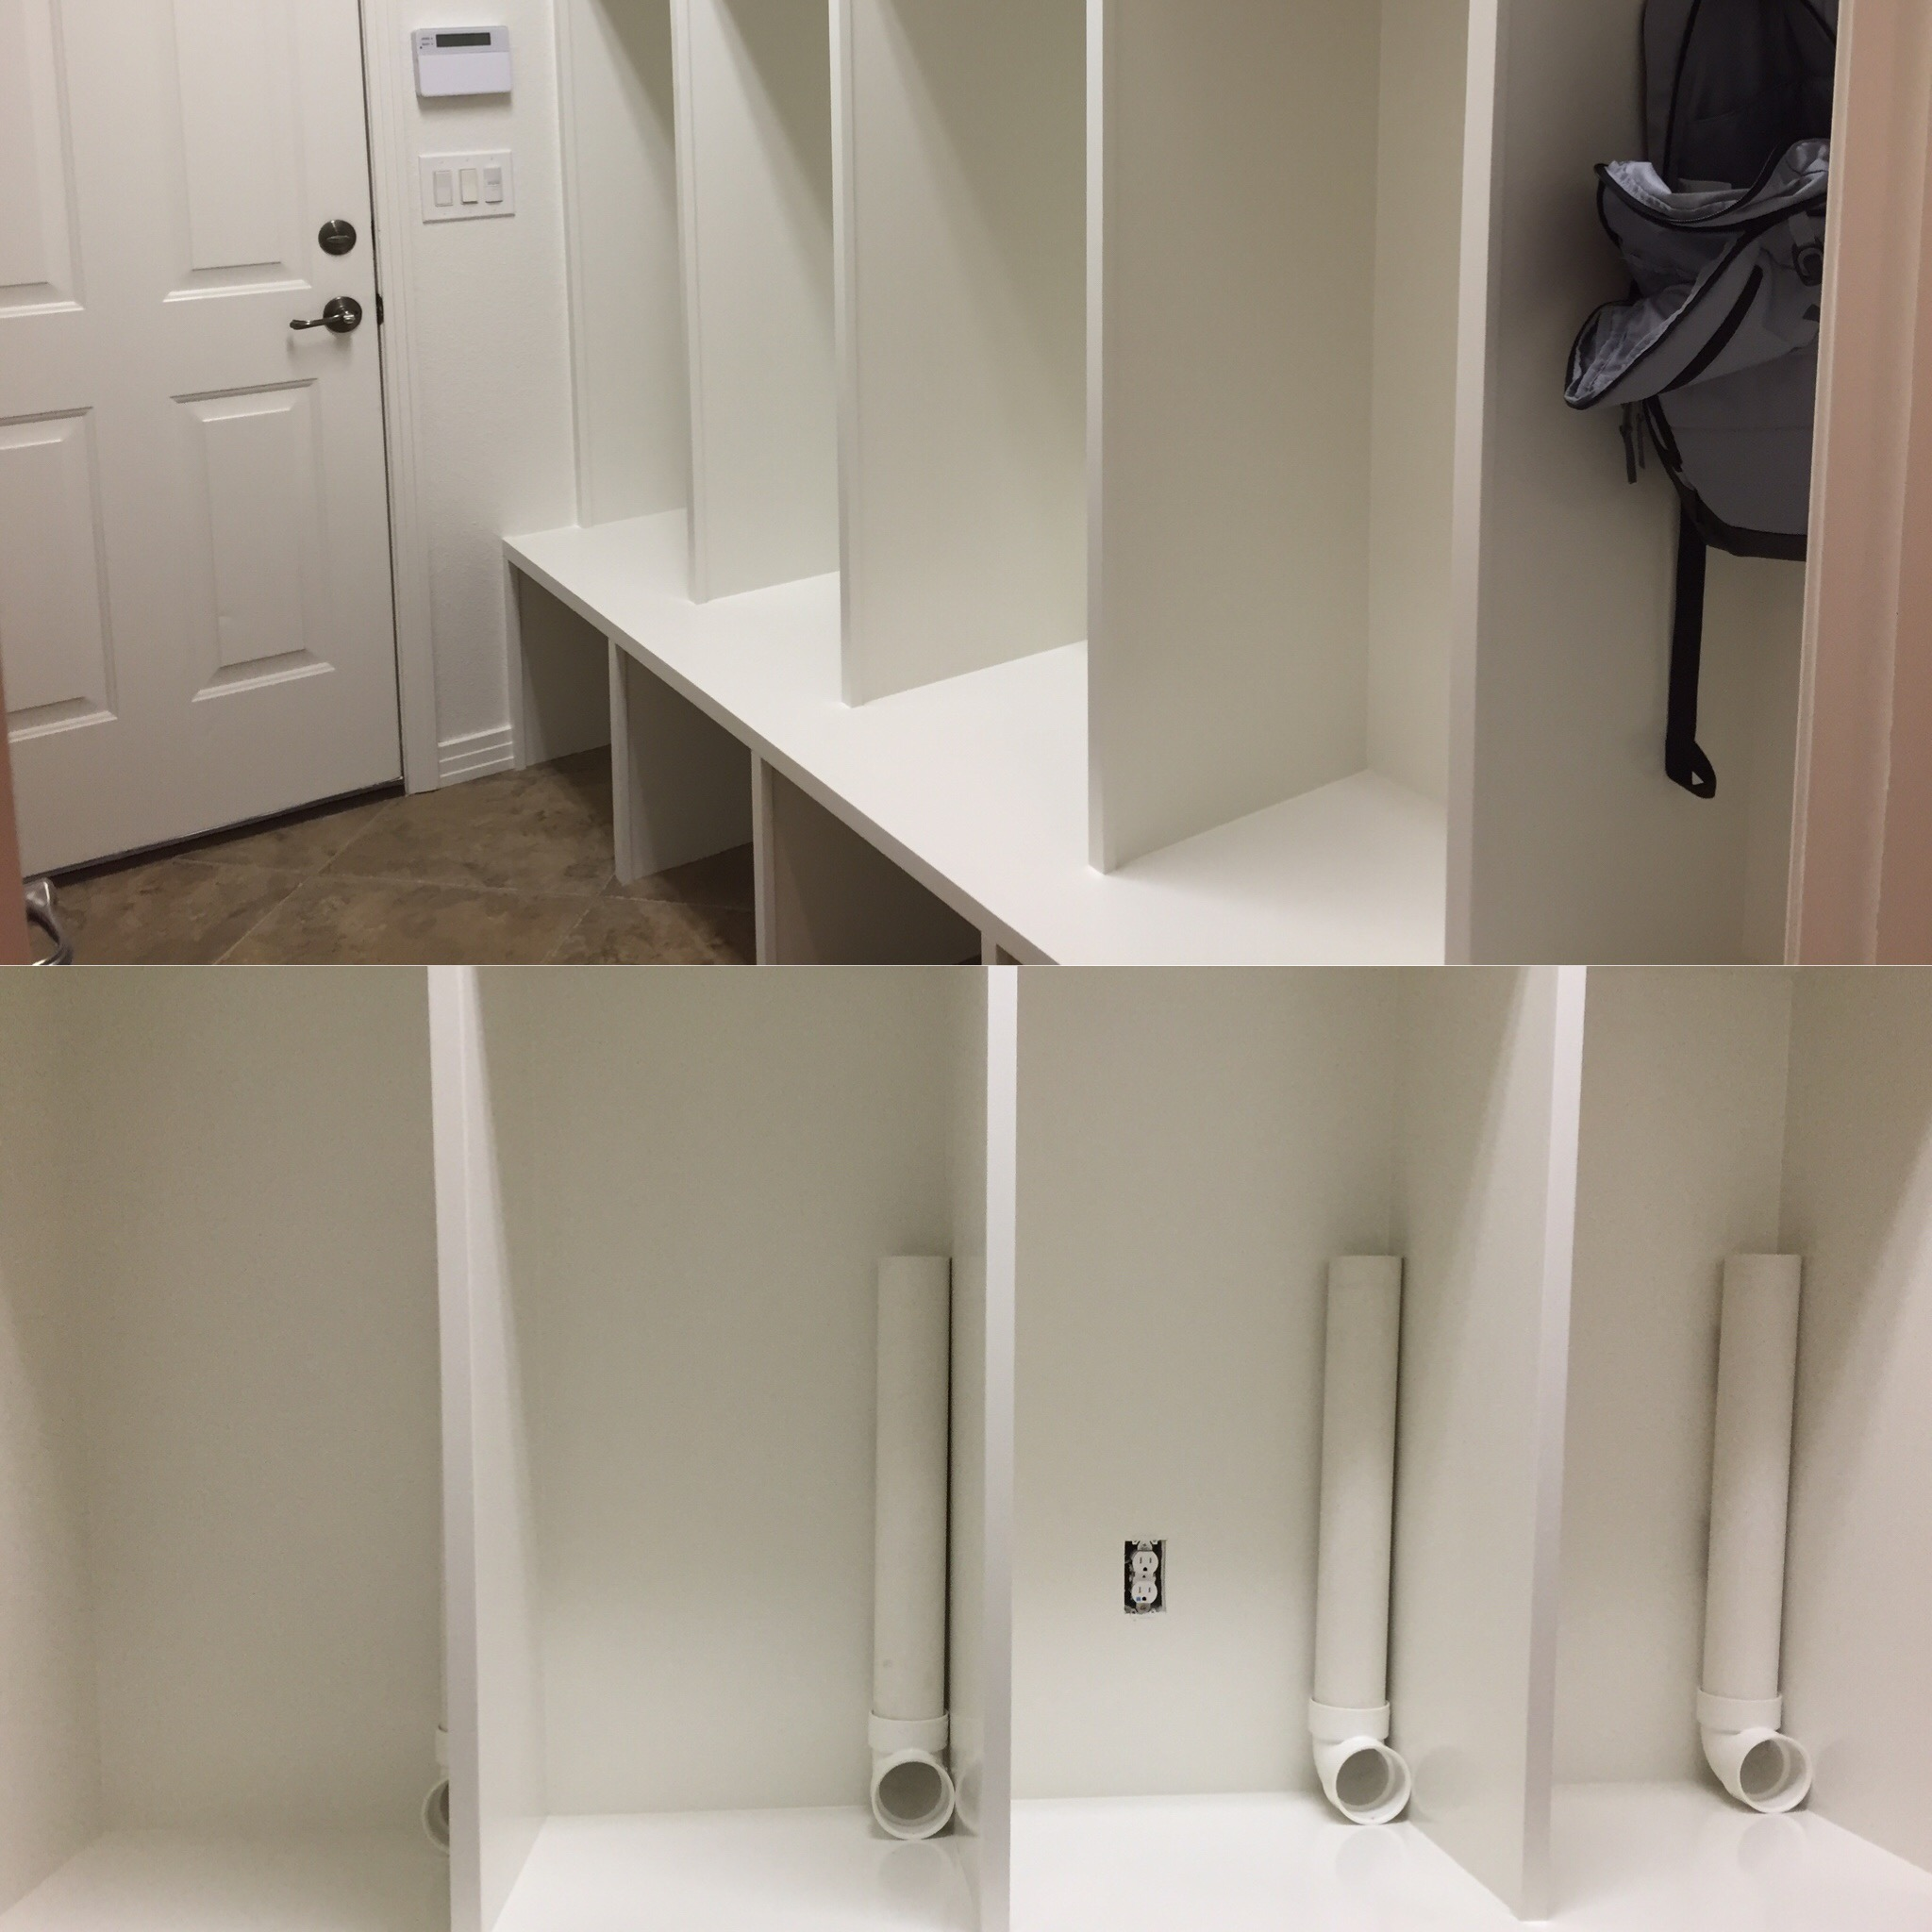 Whitney installed sock dispensers (made from PVC pipes)in her mudroom for each of the kids, so they're ready to grab and go. The kids all have their own brand of socks, so sorting is easy.